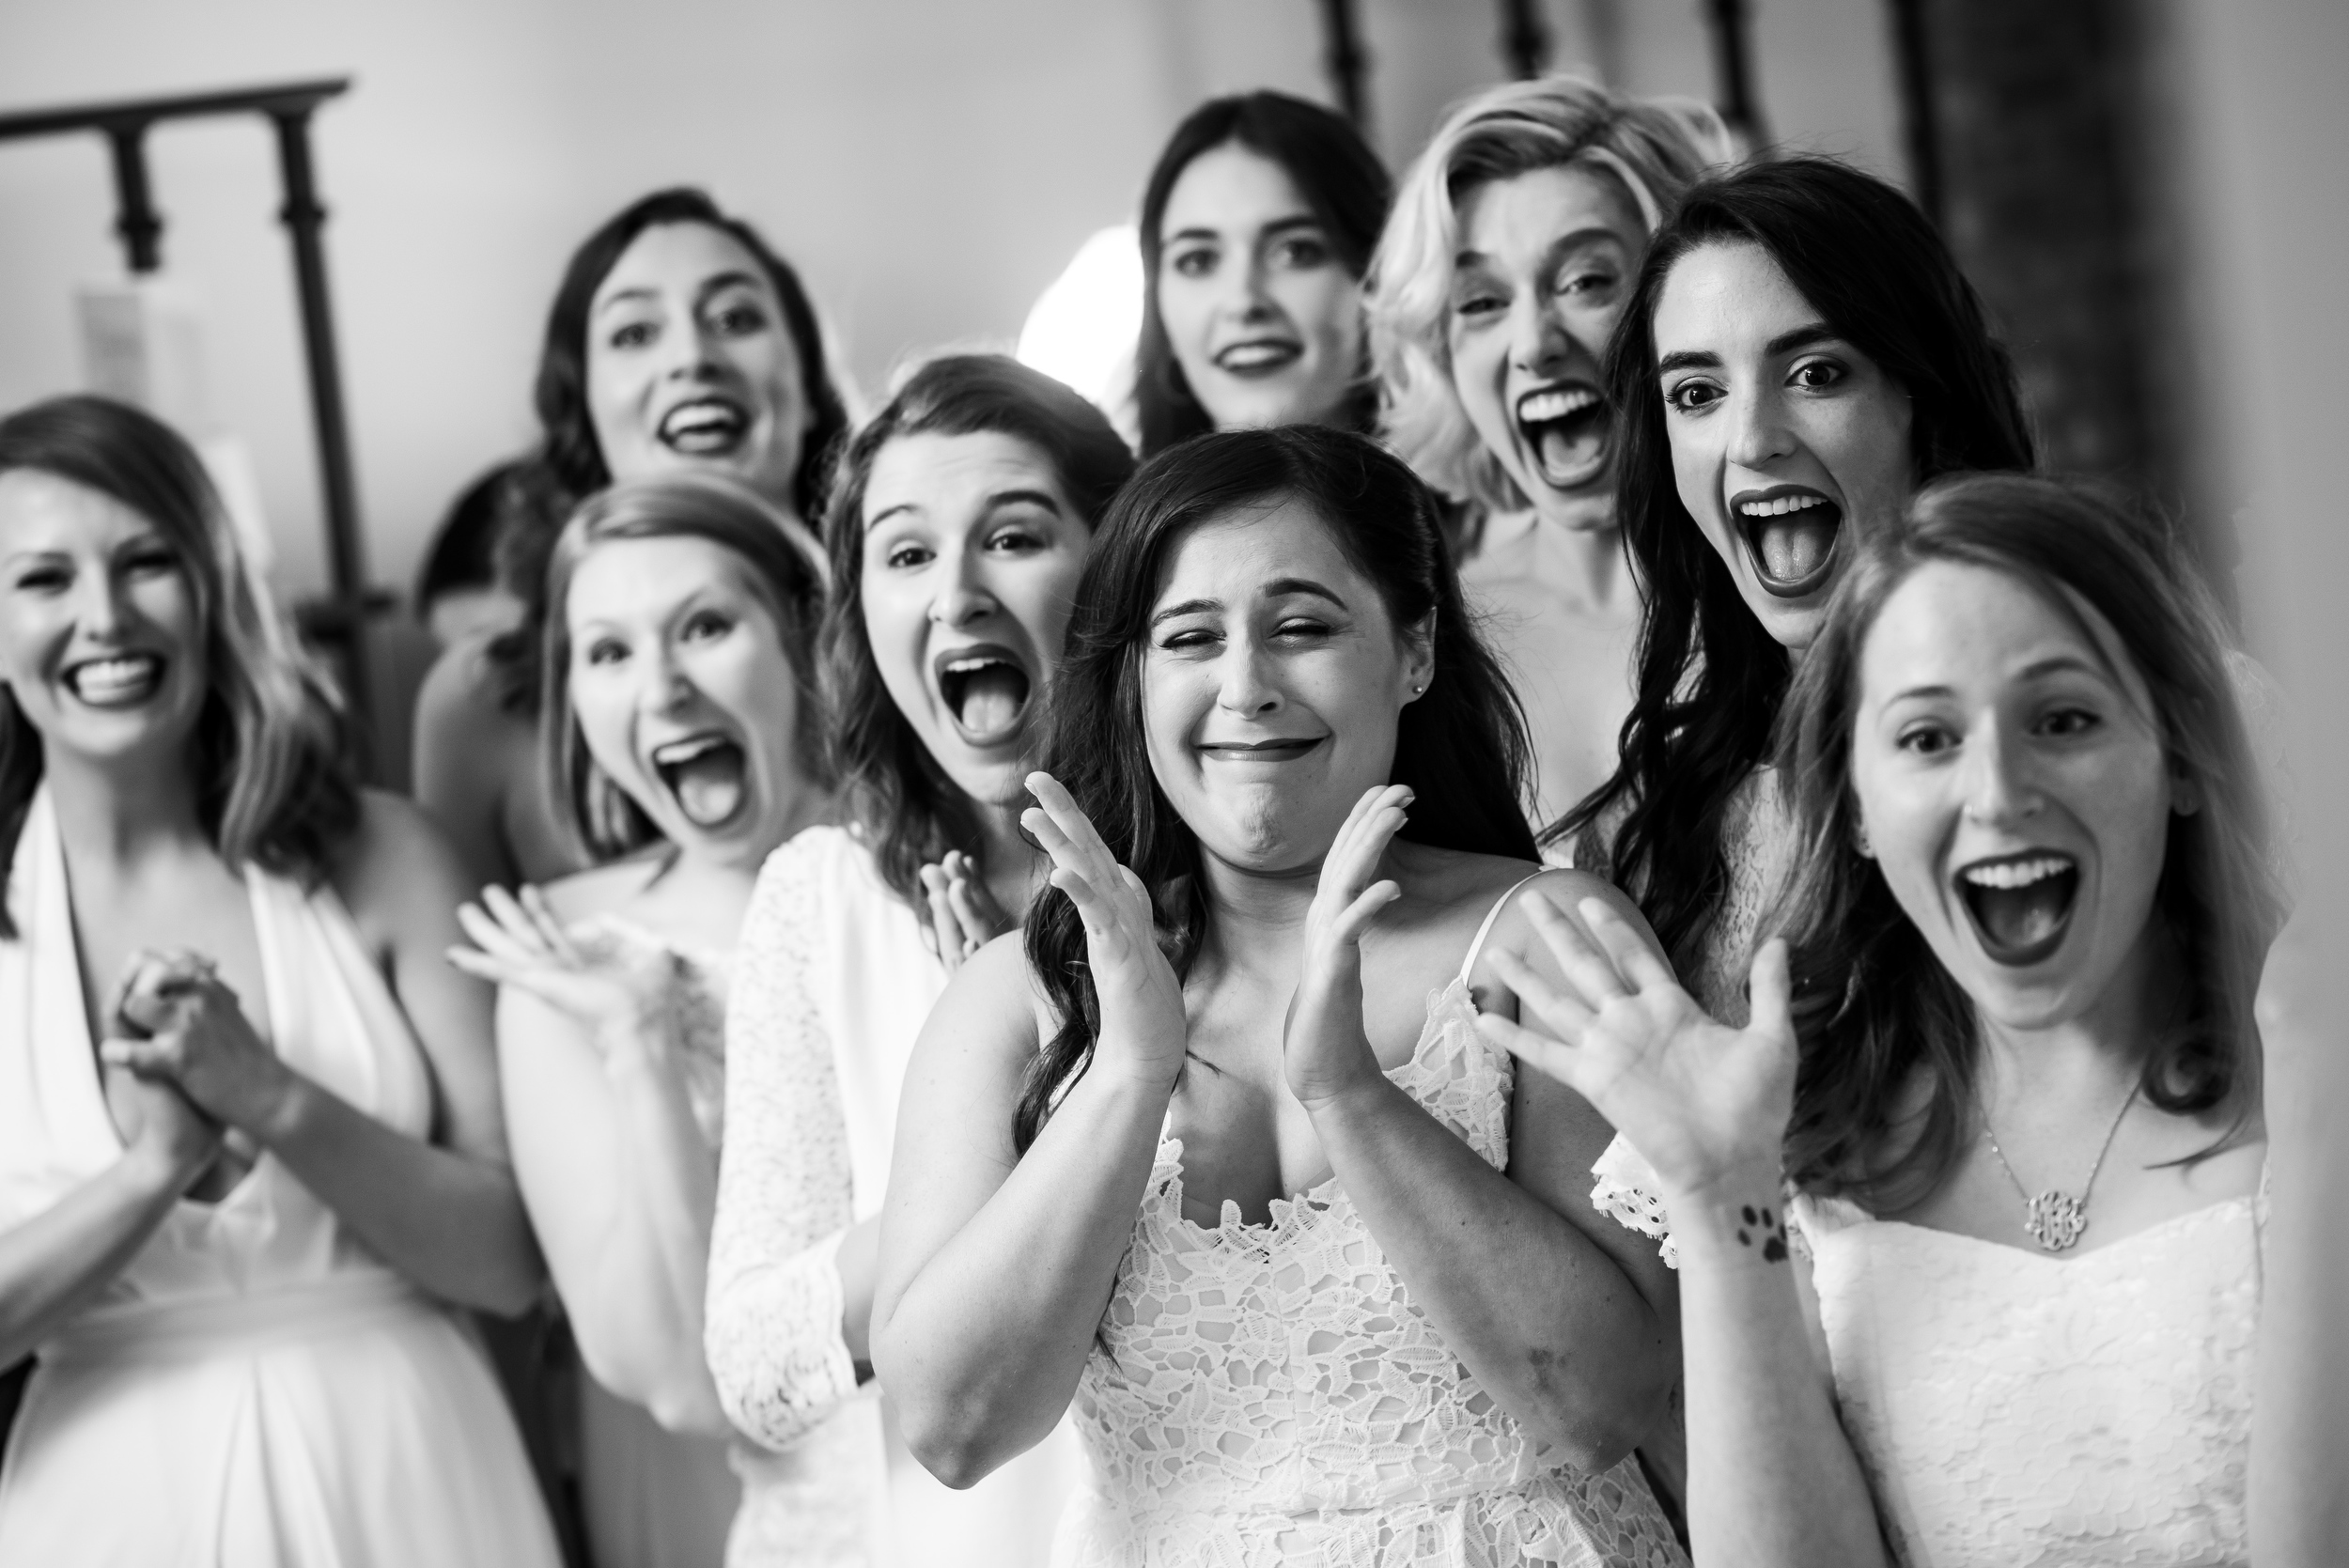 Bridesmaids seeing bride in wedding dress for Carnivale Chicago wedding captured by J Brown Photography